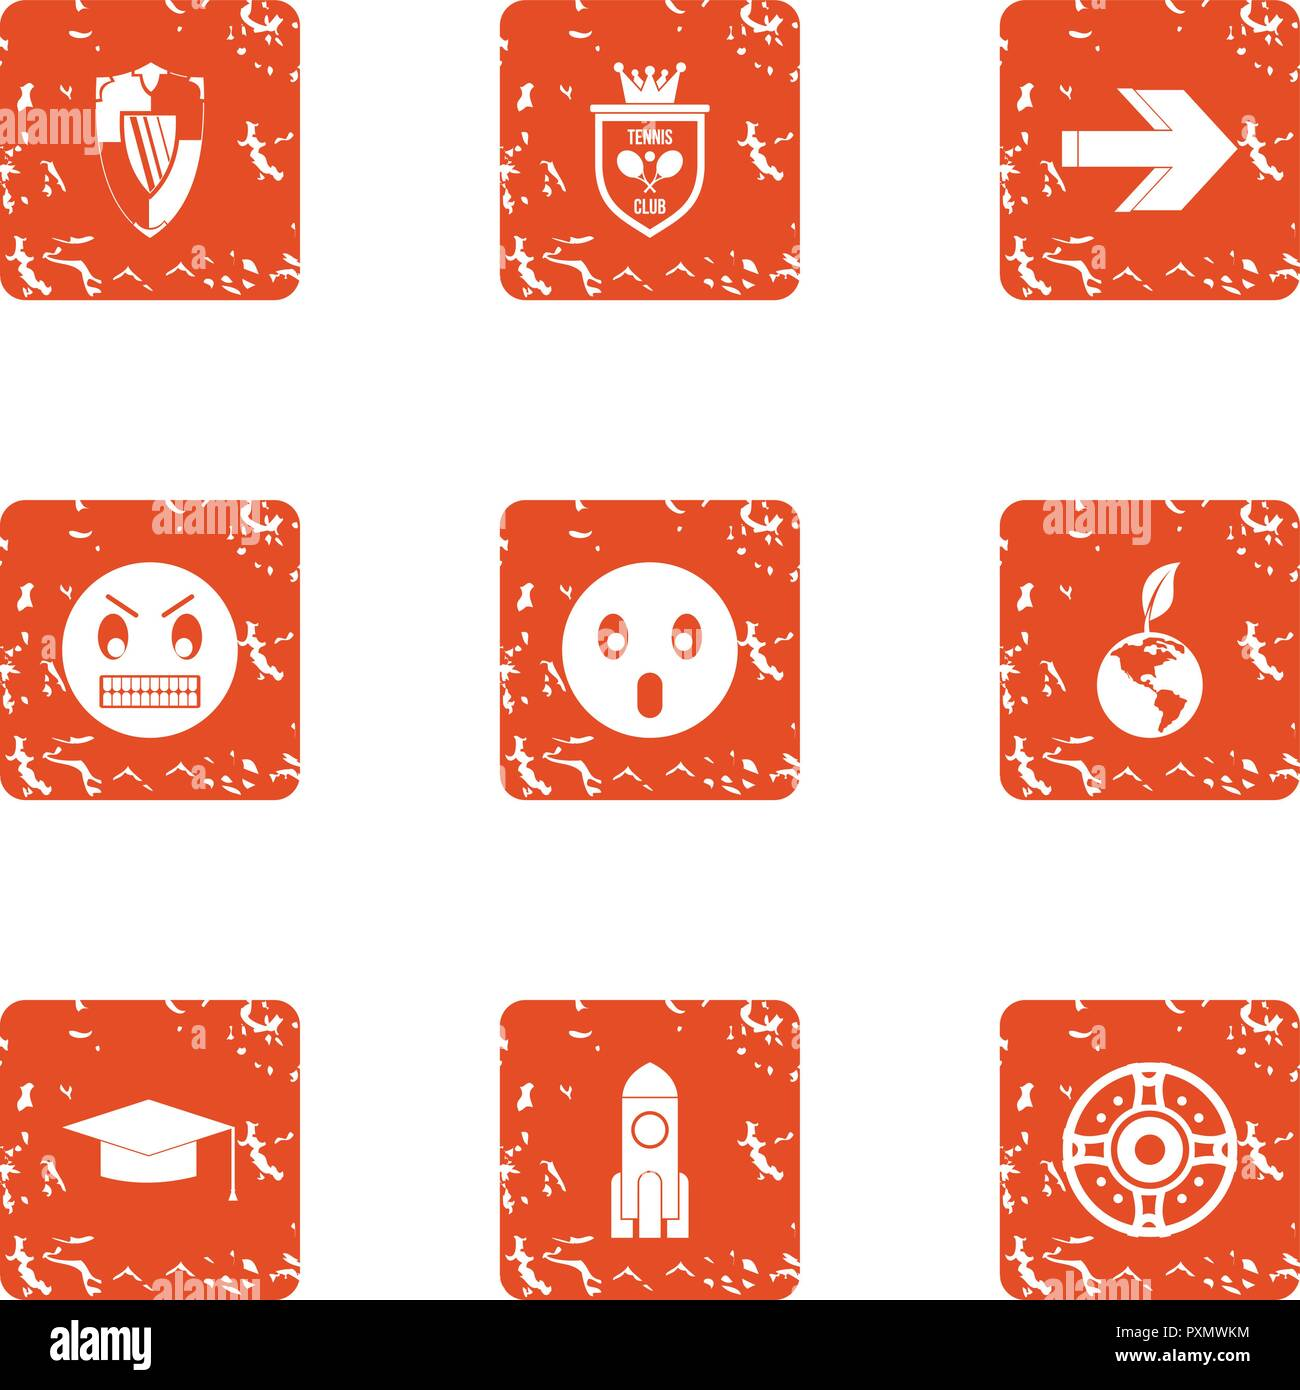 Inoffensive icons set, grunge style - Stock Image